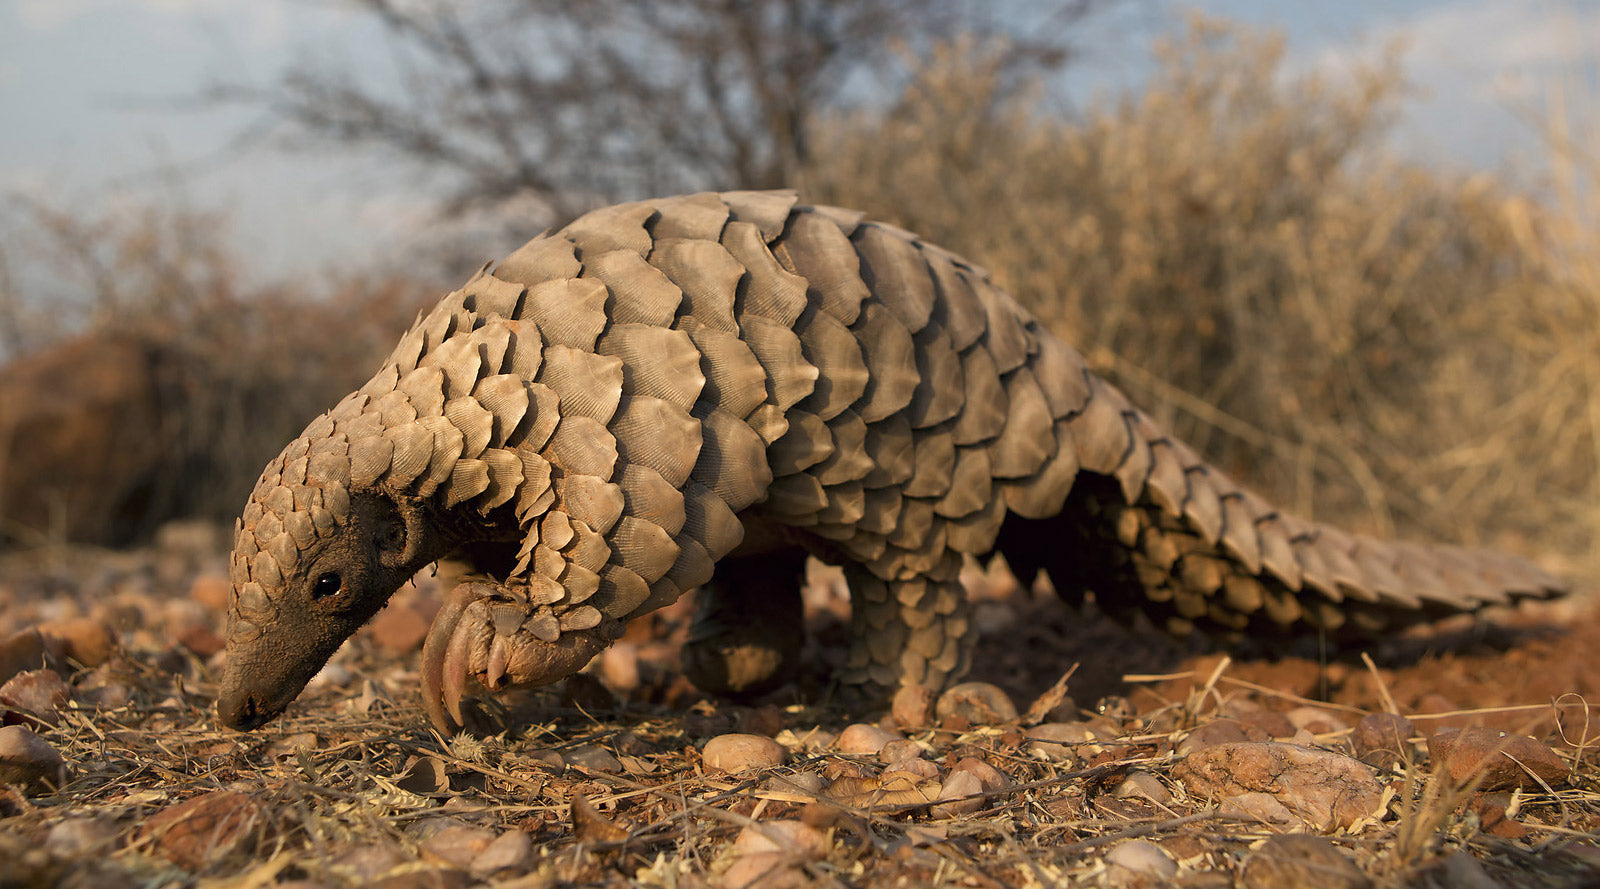 Meet the Pangolin!